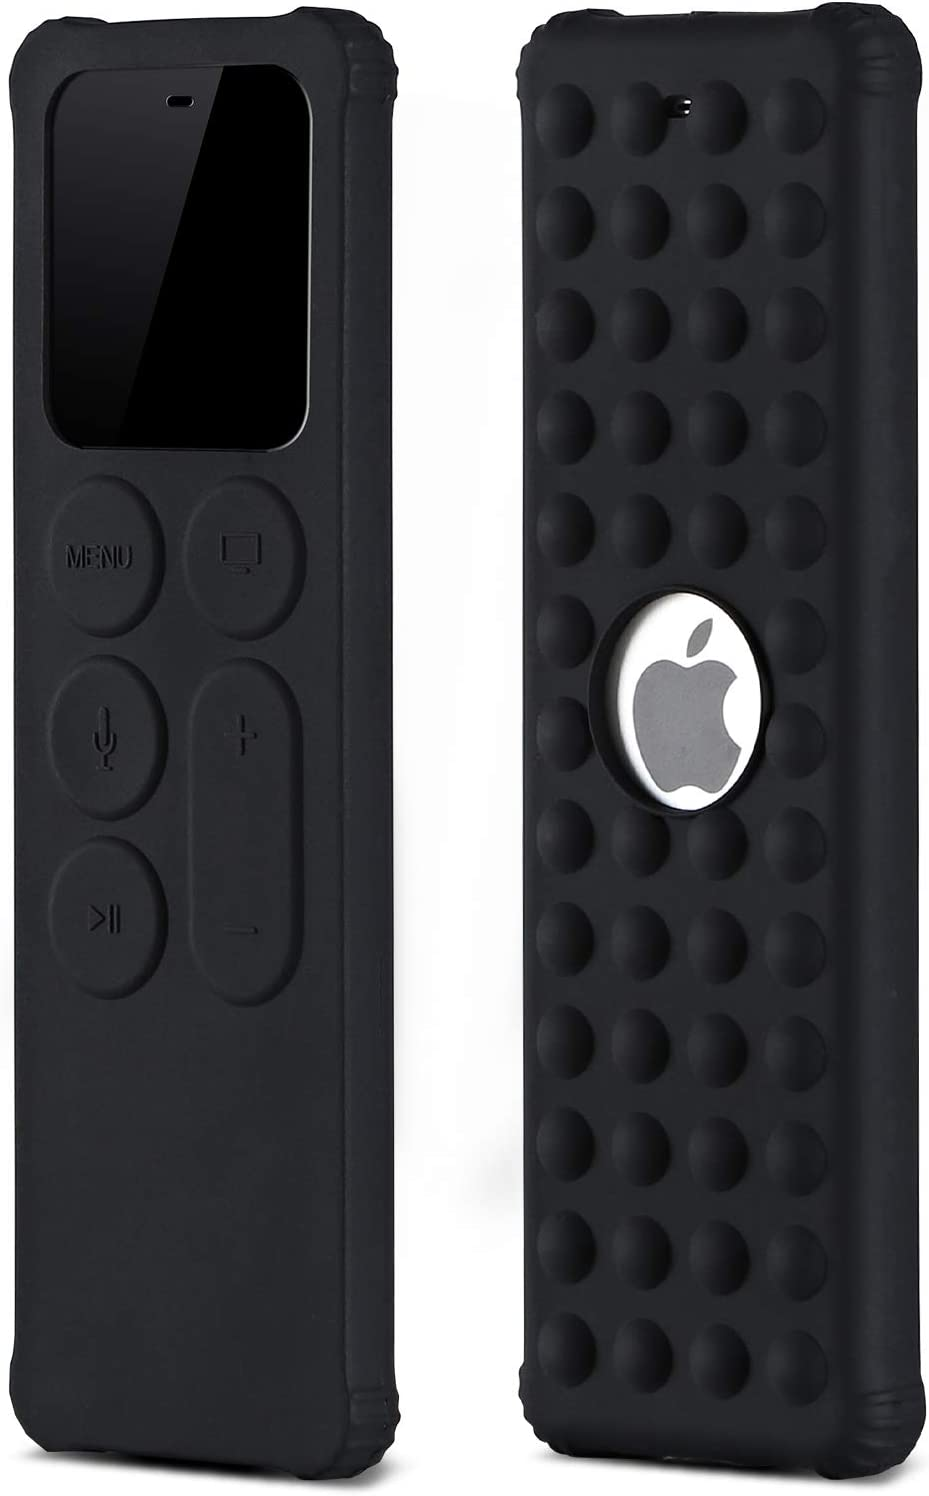 BUJIDAO Protective Case for Apple TV Siri 4K 5th / 4th Gen Remote, Protective Silicone Remote Cover for Apple TV Siri Remote Controller Lightweight Anti Slip Shock Proof (Black)